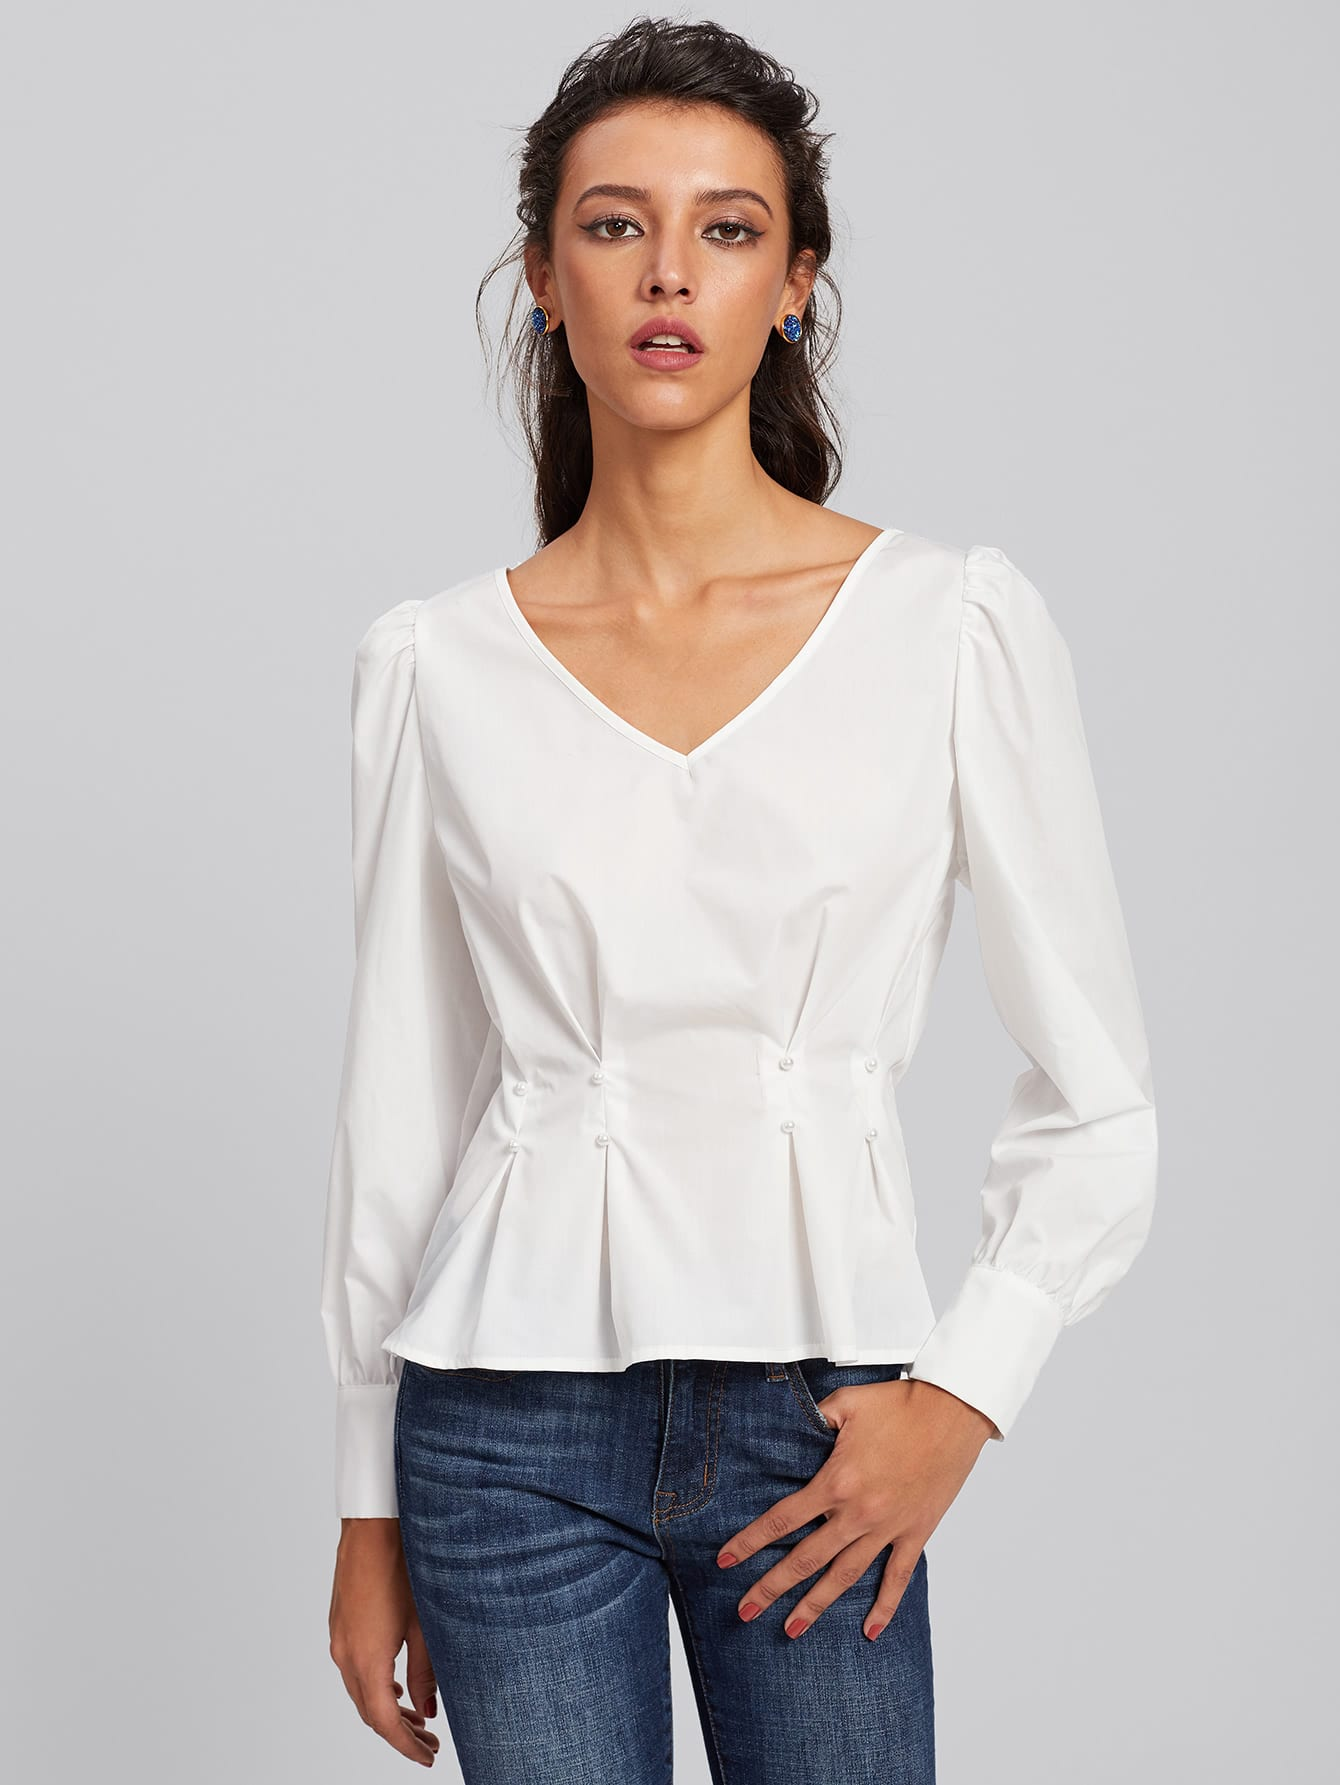 Bow Back Pearl Beaded Detail Peplum Top pearl detail layered frill sleeve top